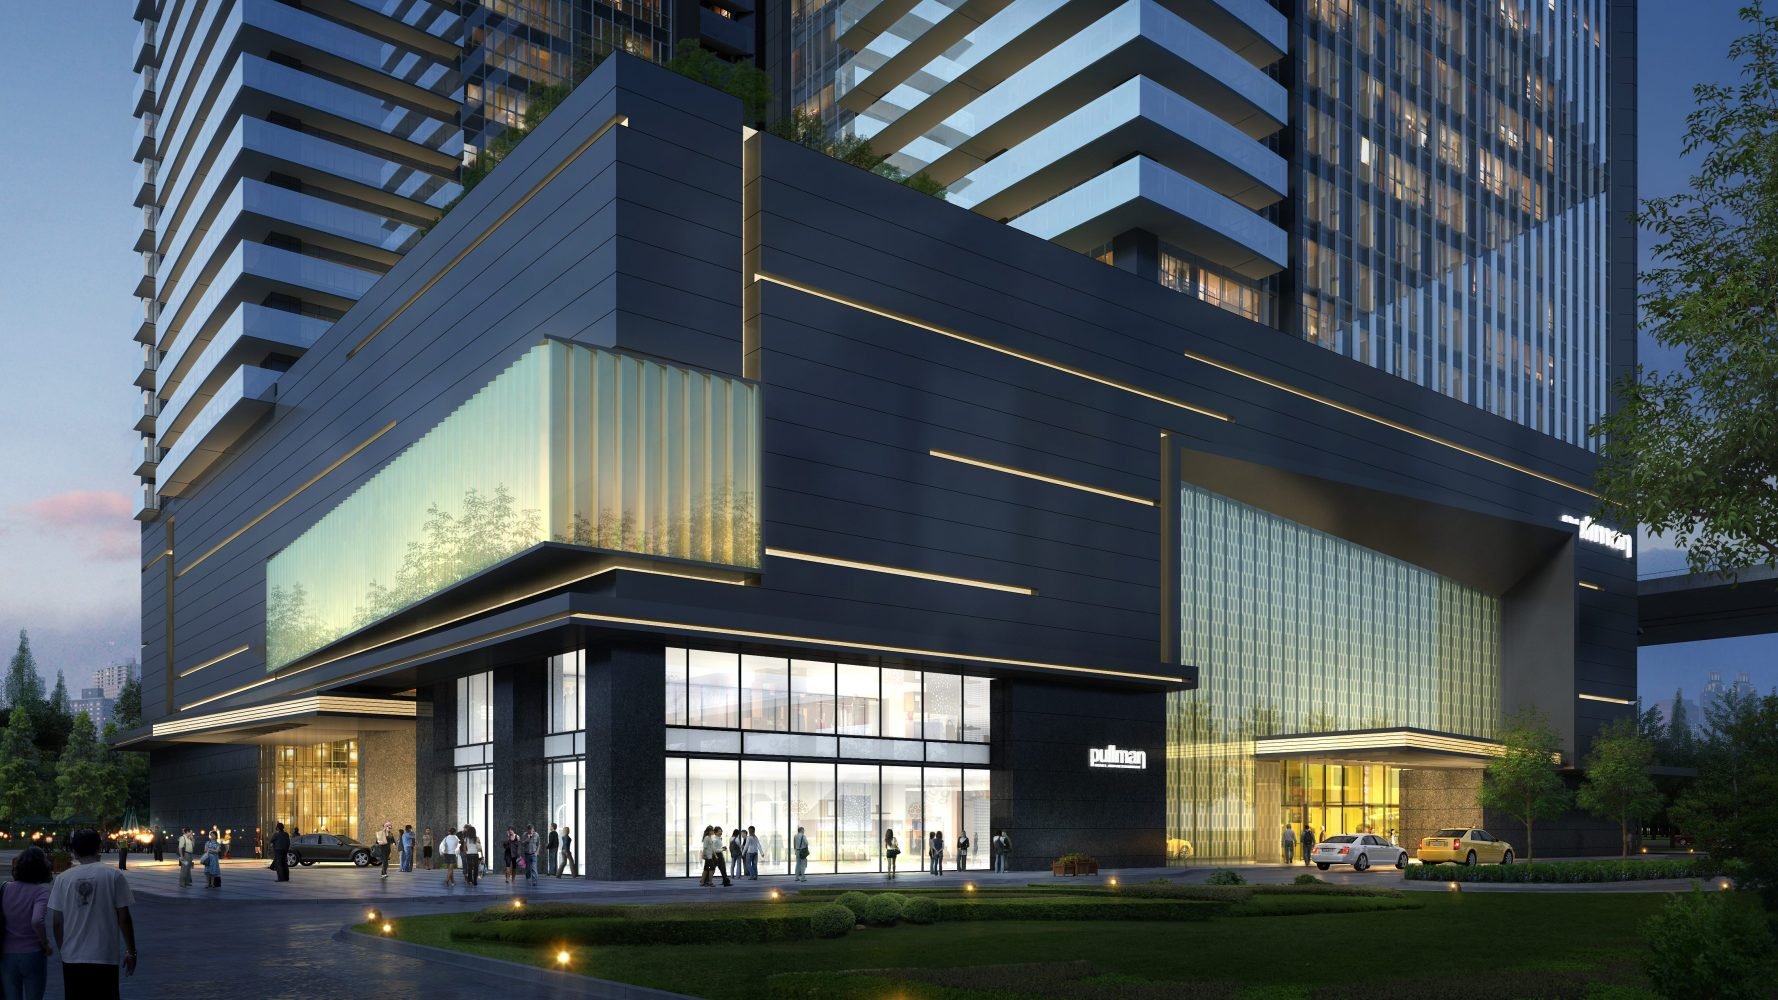 HangZhou ZhuoYue Pullman Hotel and Twin Towers, by Archilier Architecture